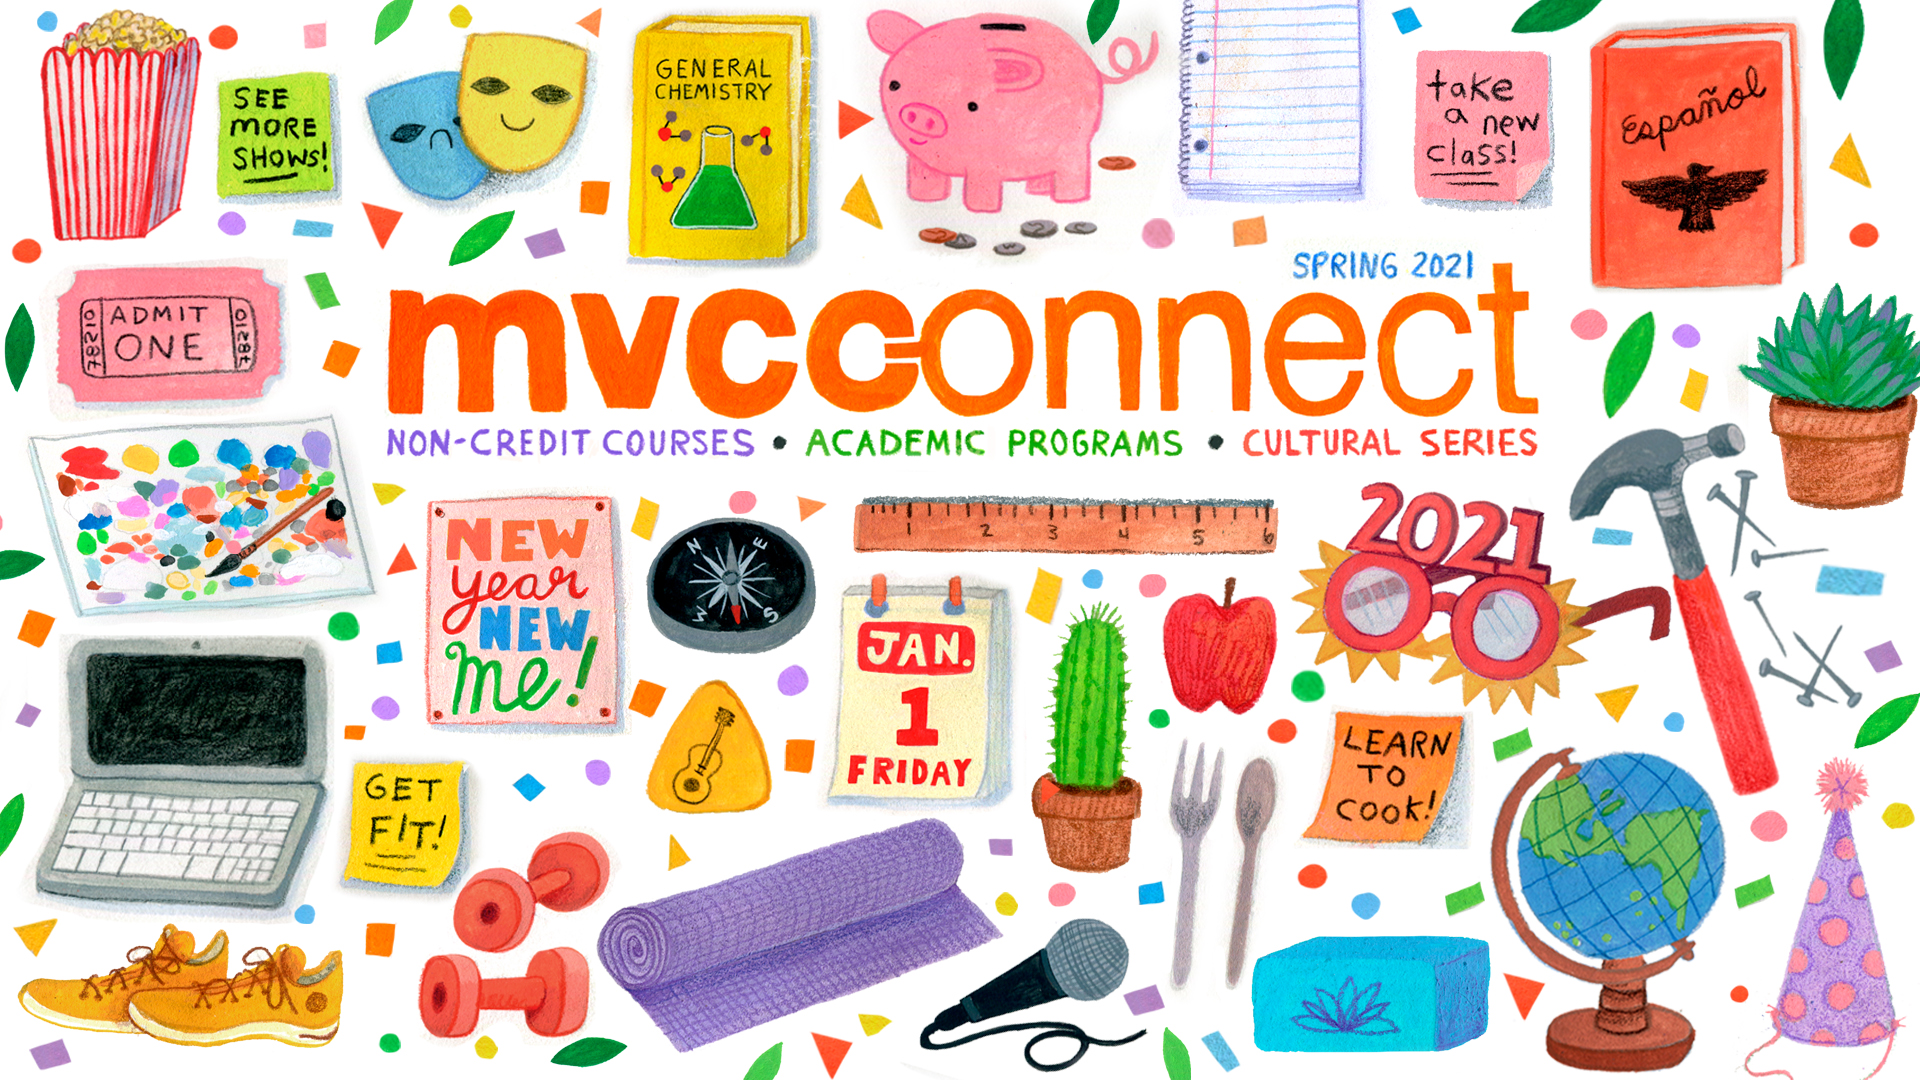 Mvcconnect Spring 2021